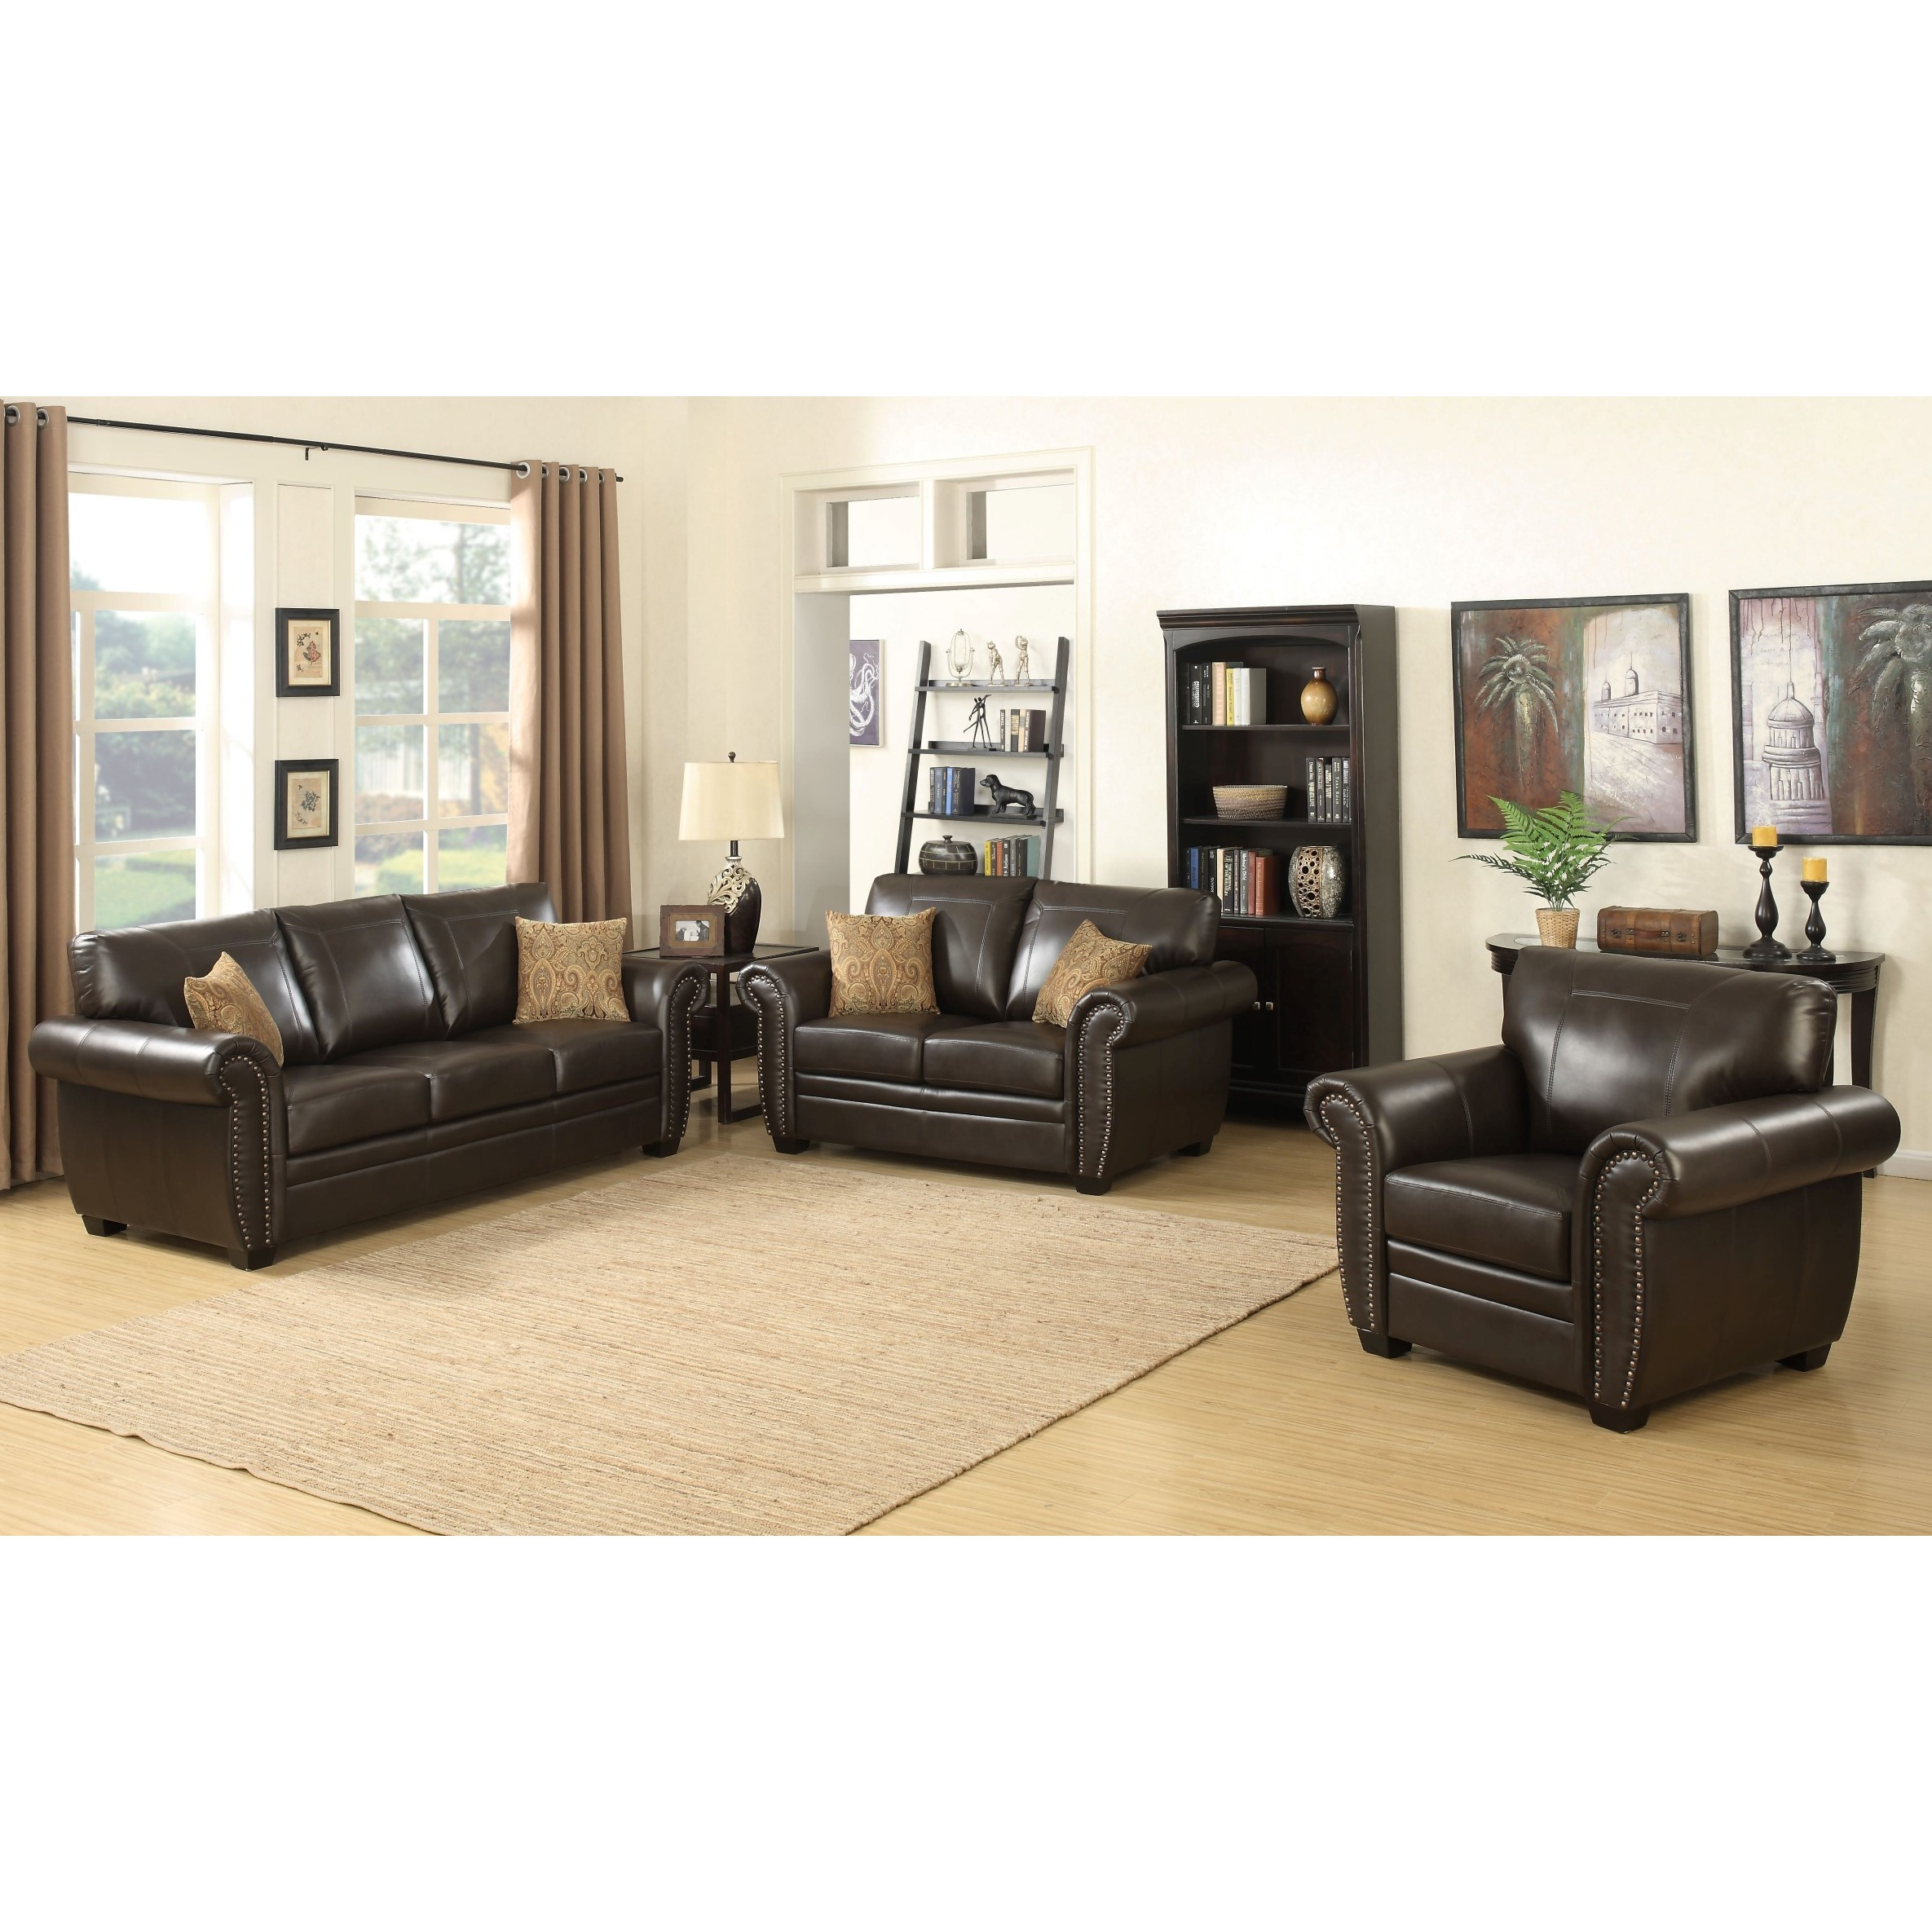 Louis 3 Piece Brown Traditional Stationary Living Room Set